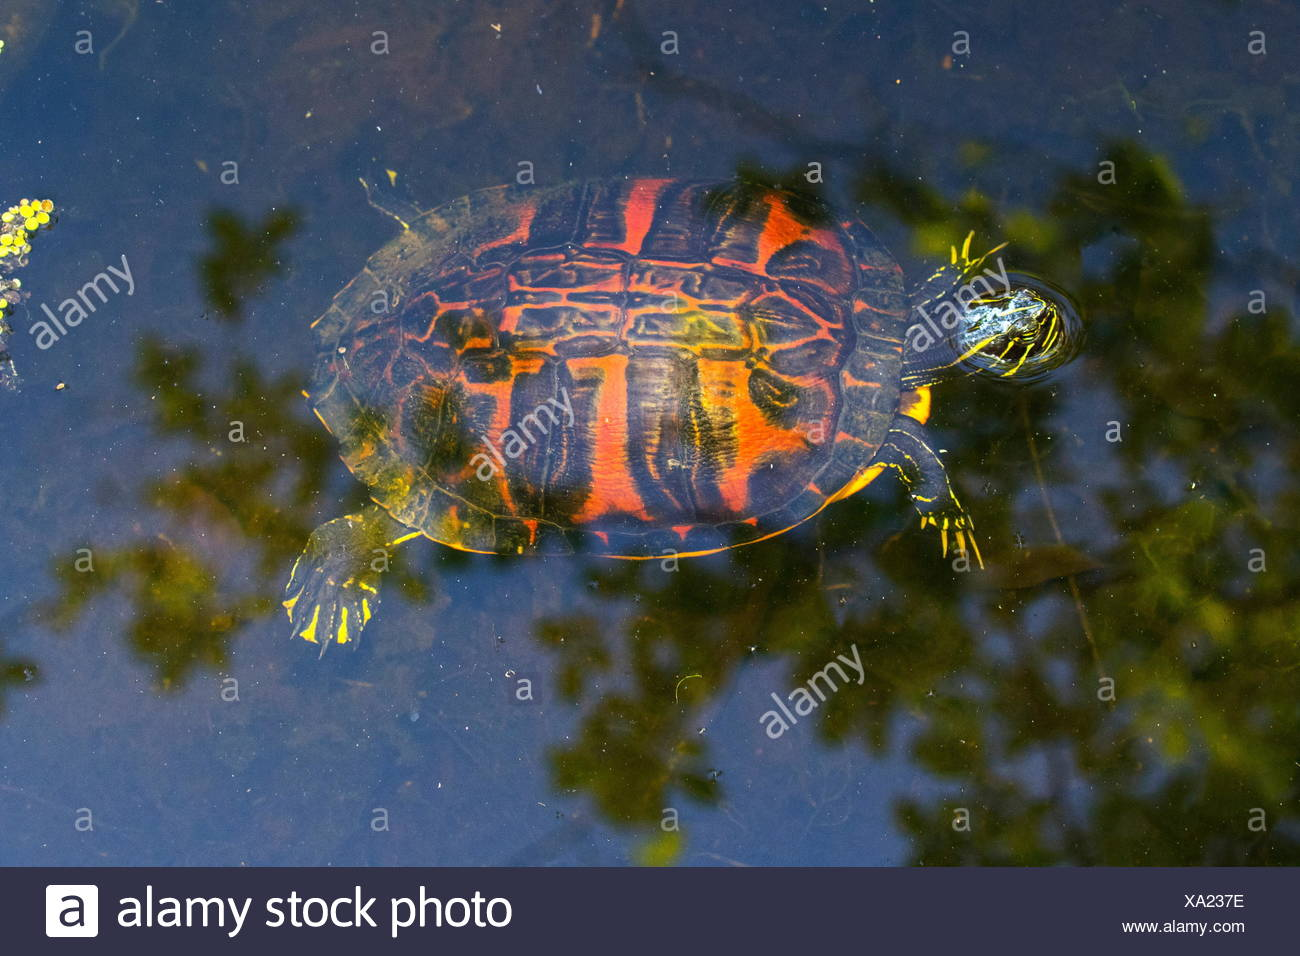 A Florida red bellied cooter, Pseudemys nelsoni, on the water's surface. Stock Photo